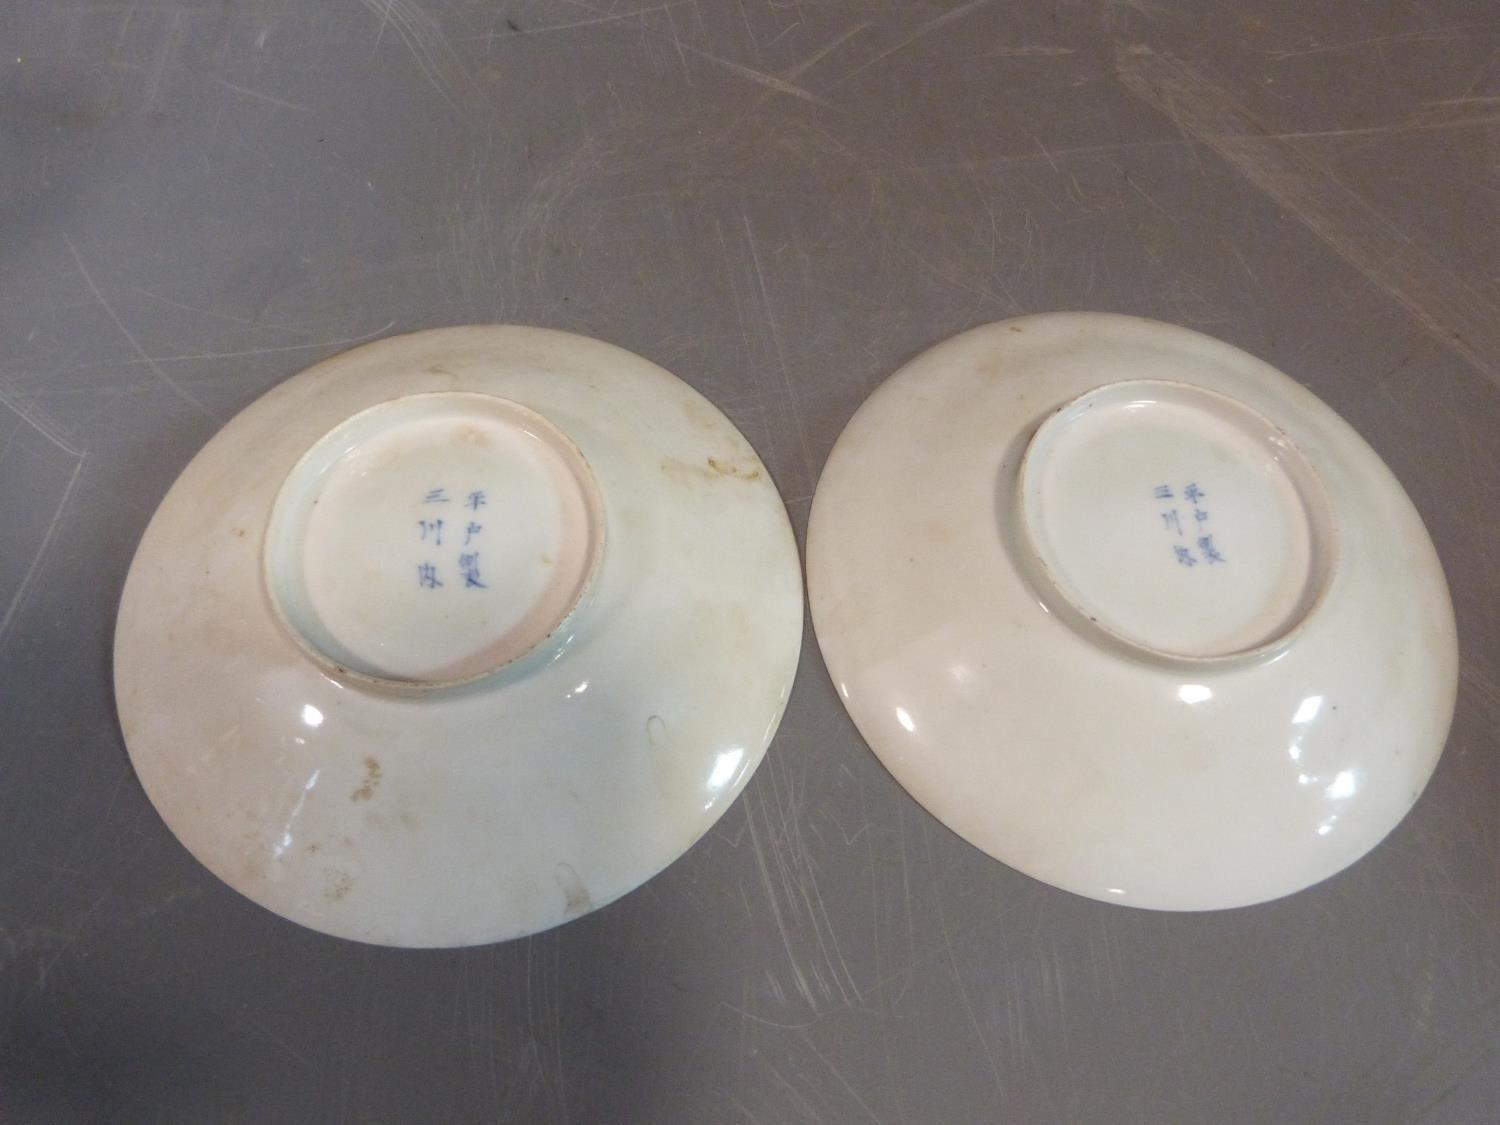 Lot 17 - A pair of blue and white Chinese fine porcelain dishes. Six character mark to base. Diameter 13.5cm